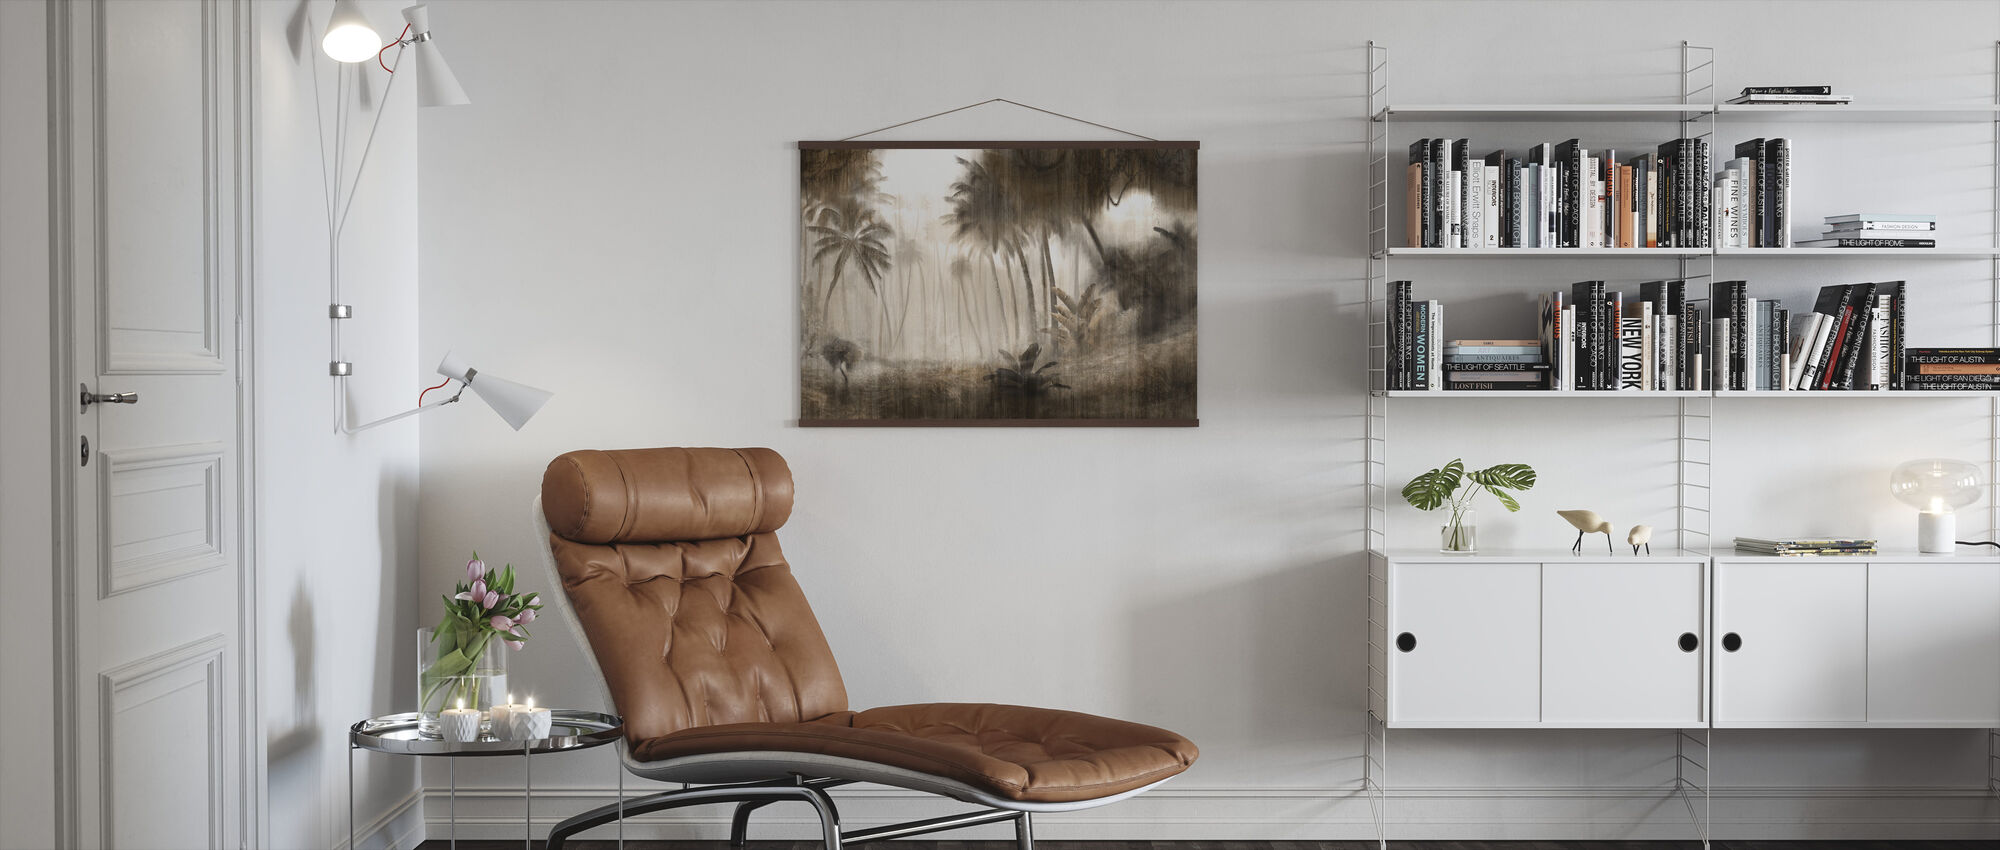 Definitive Tropical - Hazel - Poster - Living Room